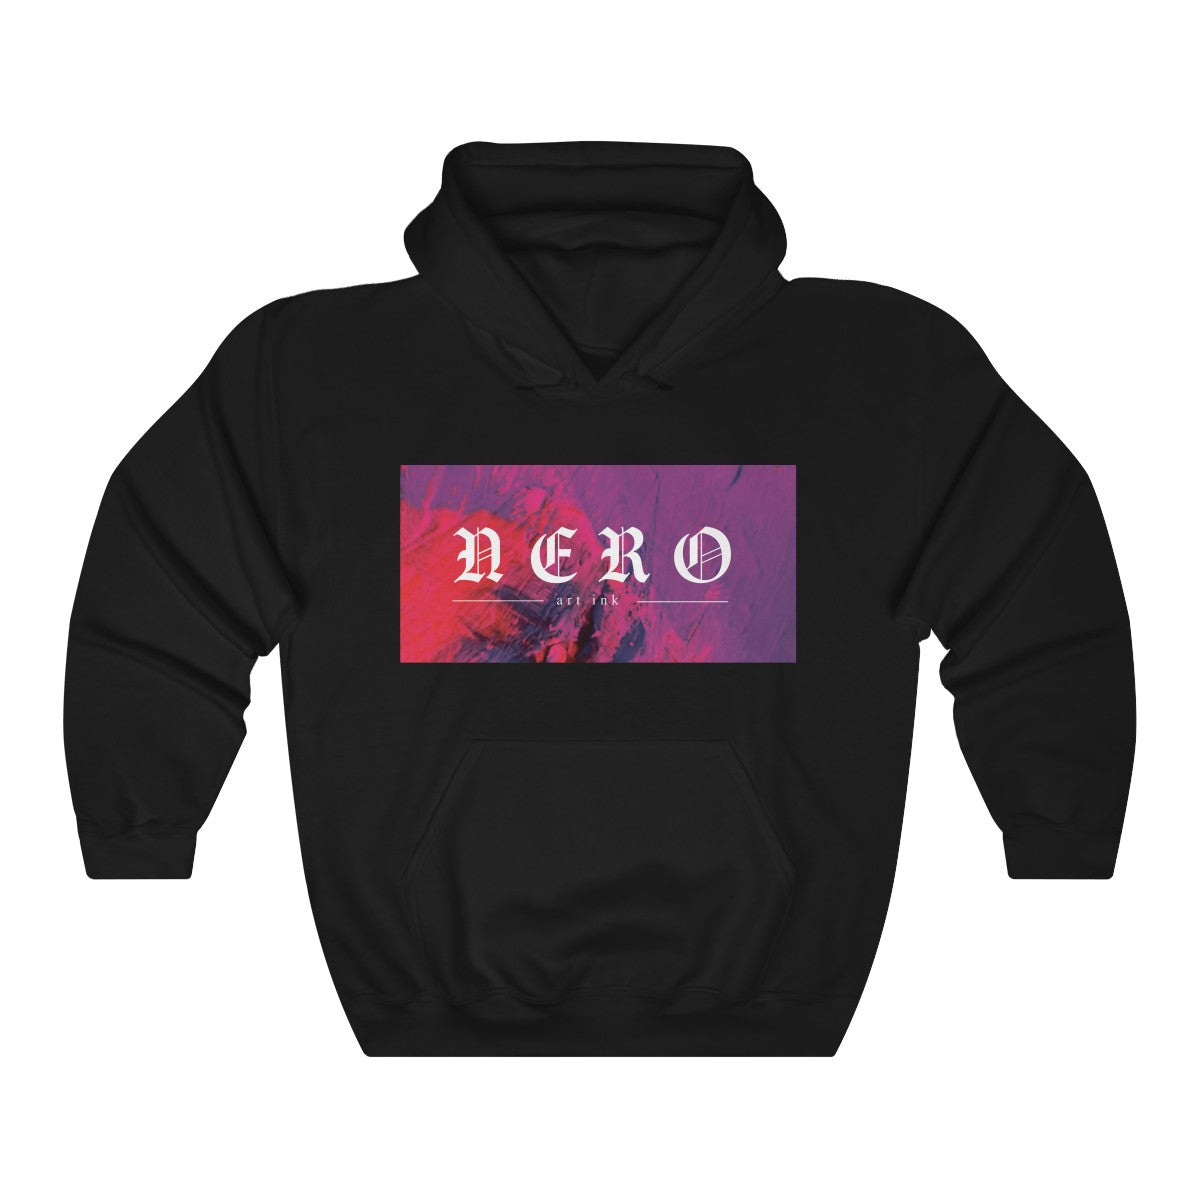 Nero abstract hoodie